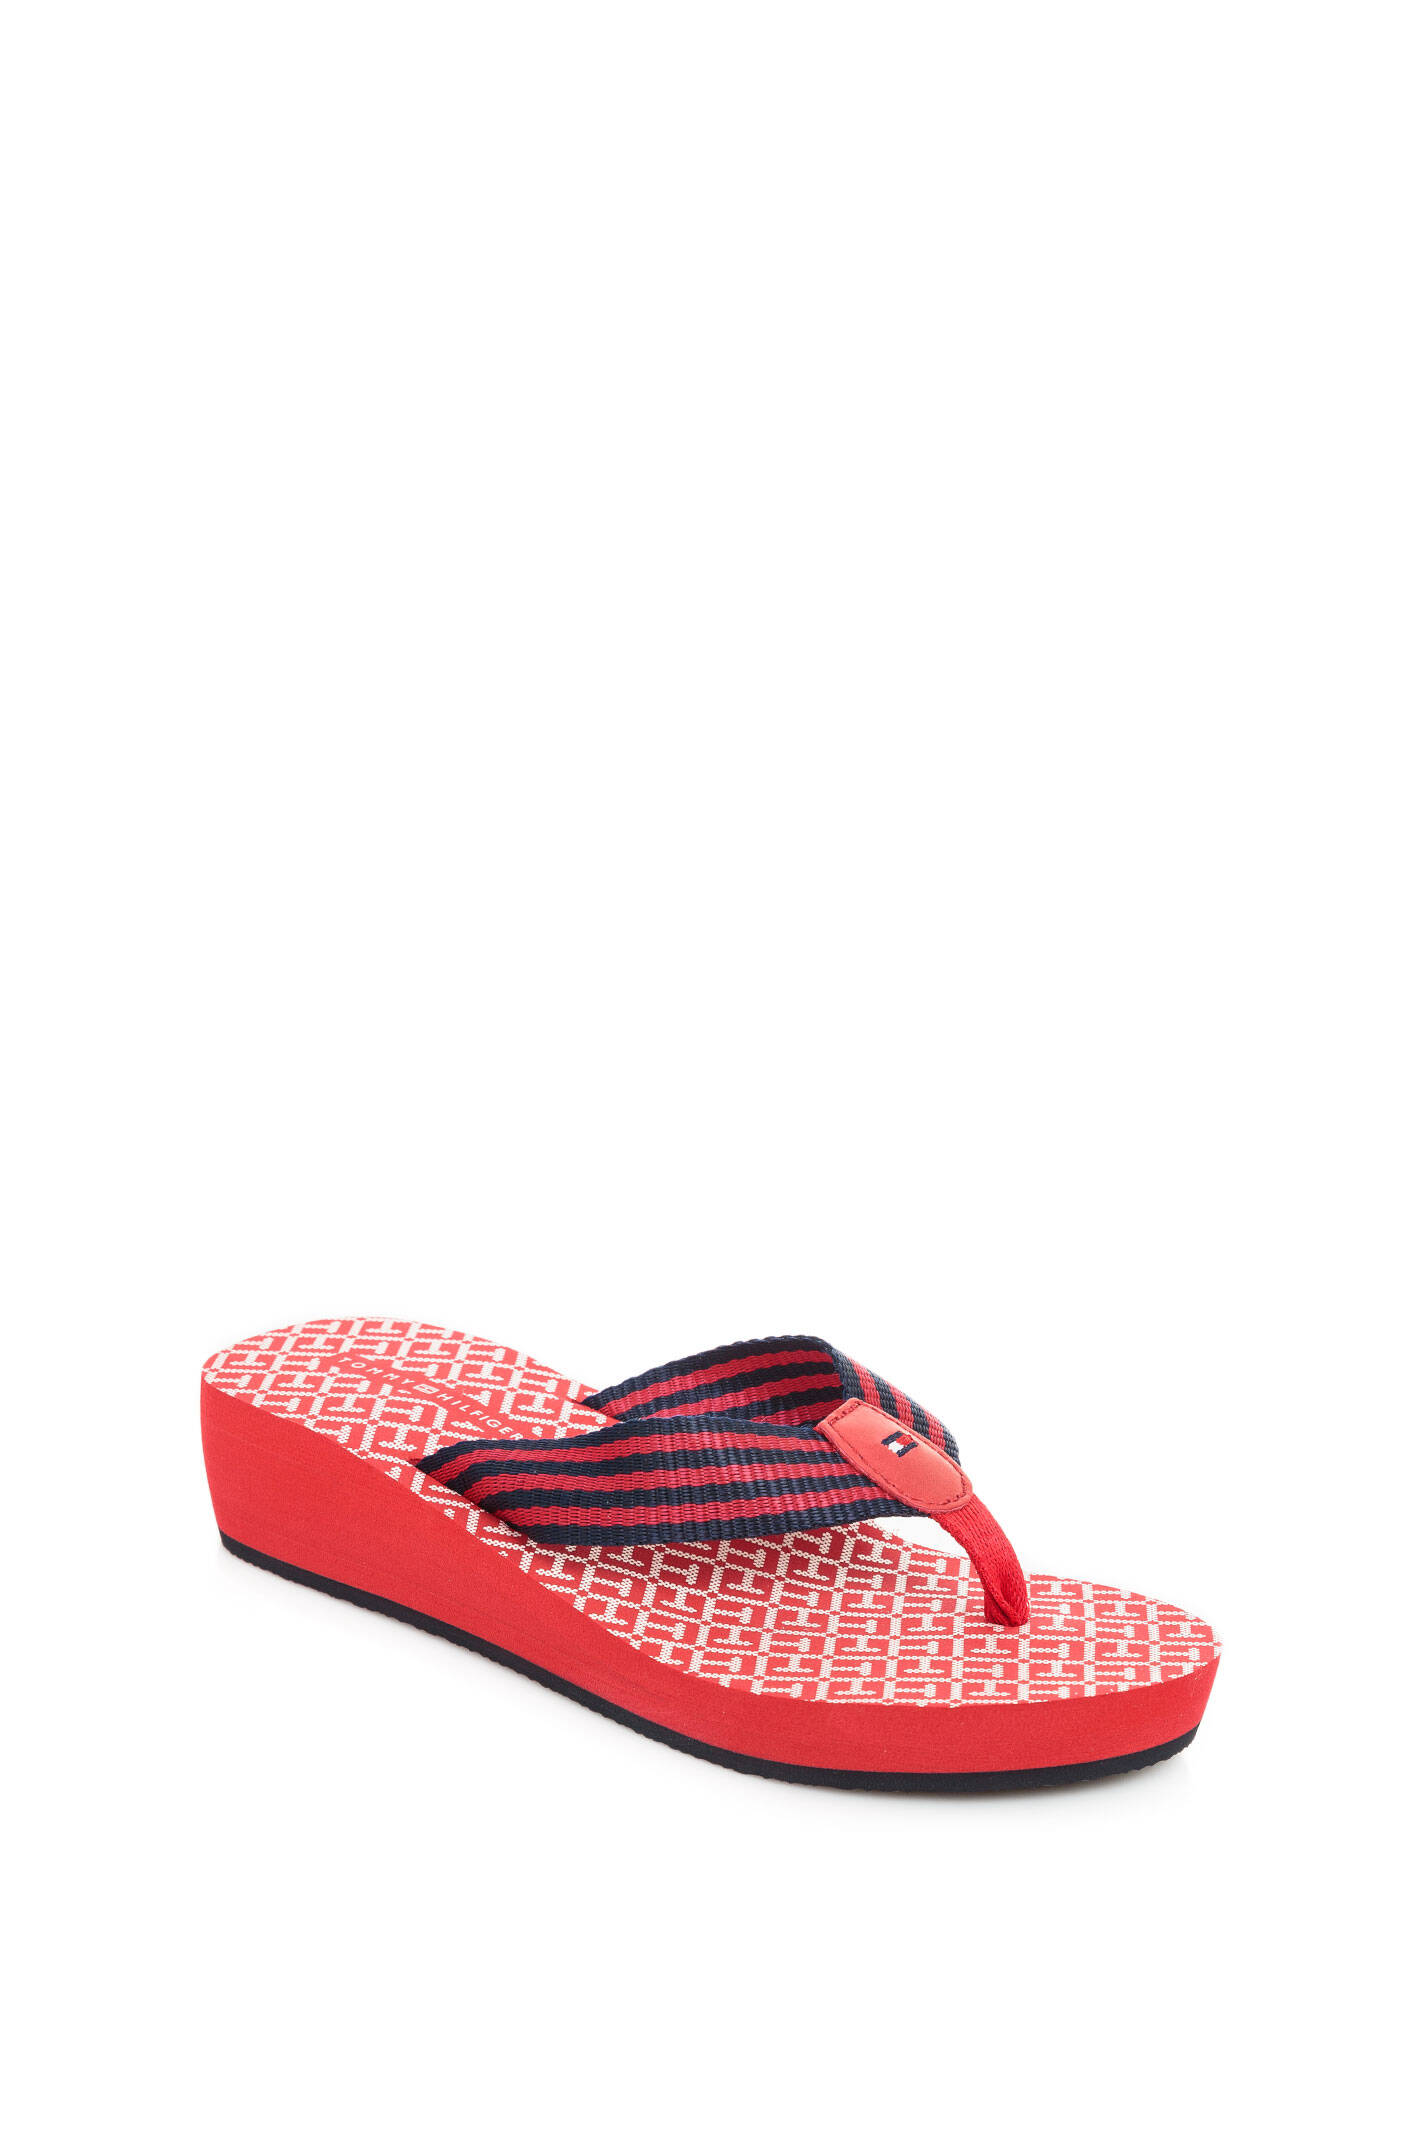 flip flops tommy hilfiger flip flops. Black Bedroom Furniture Sets. Home Design Ideas